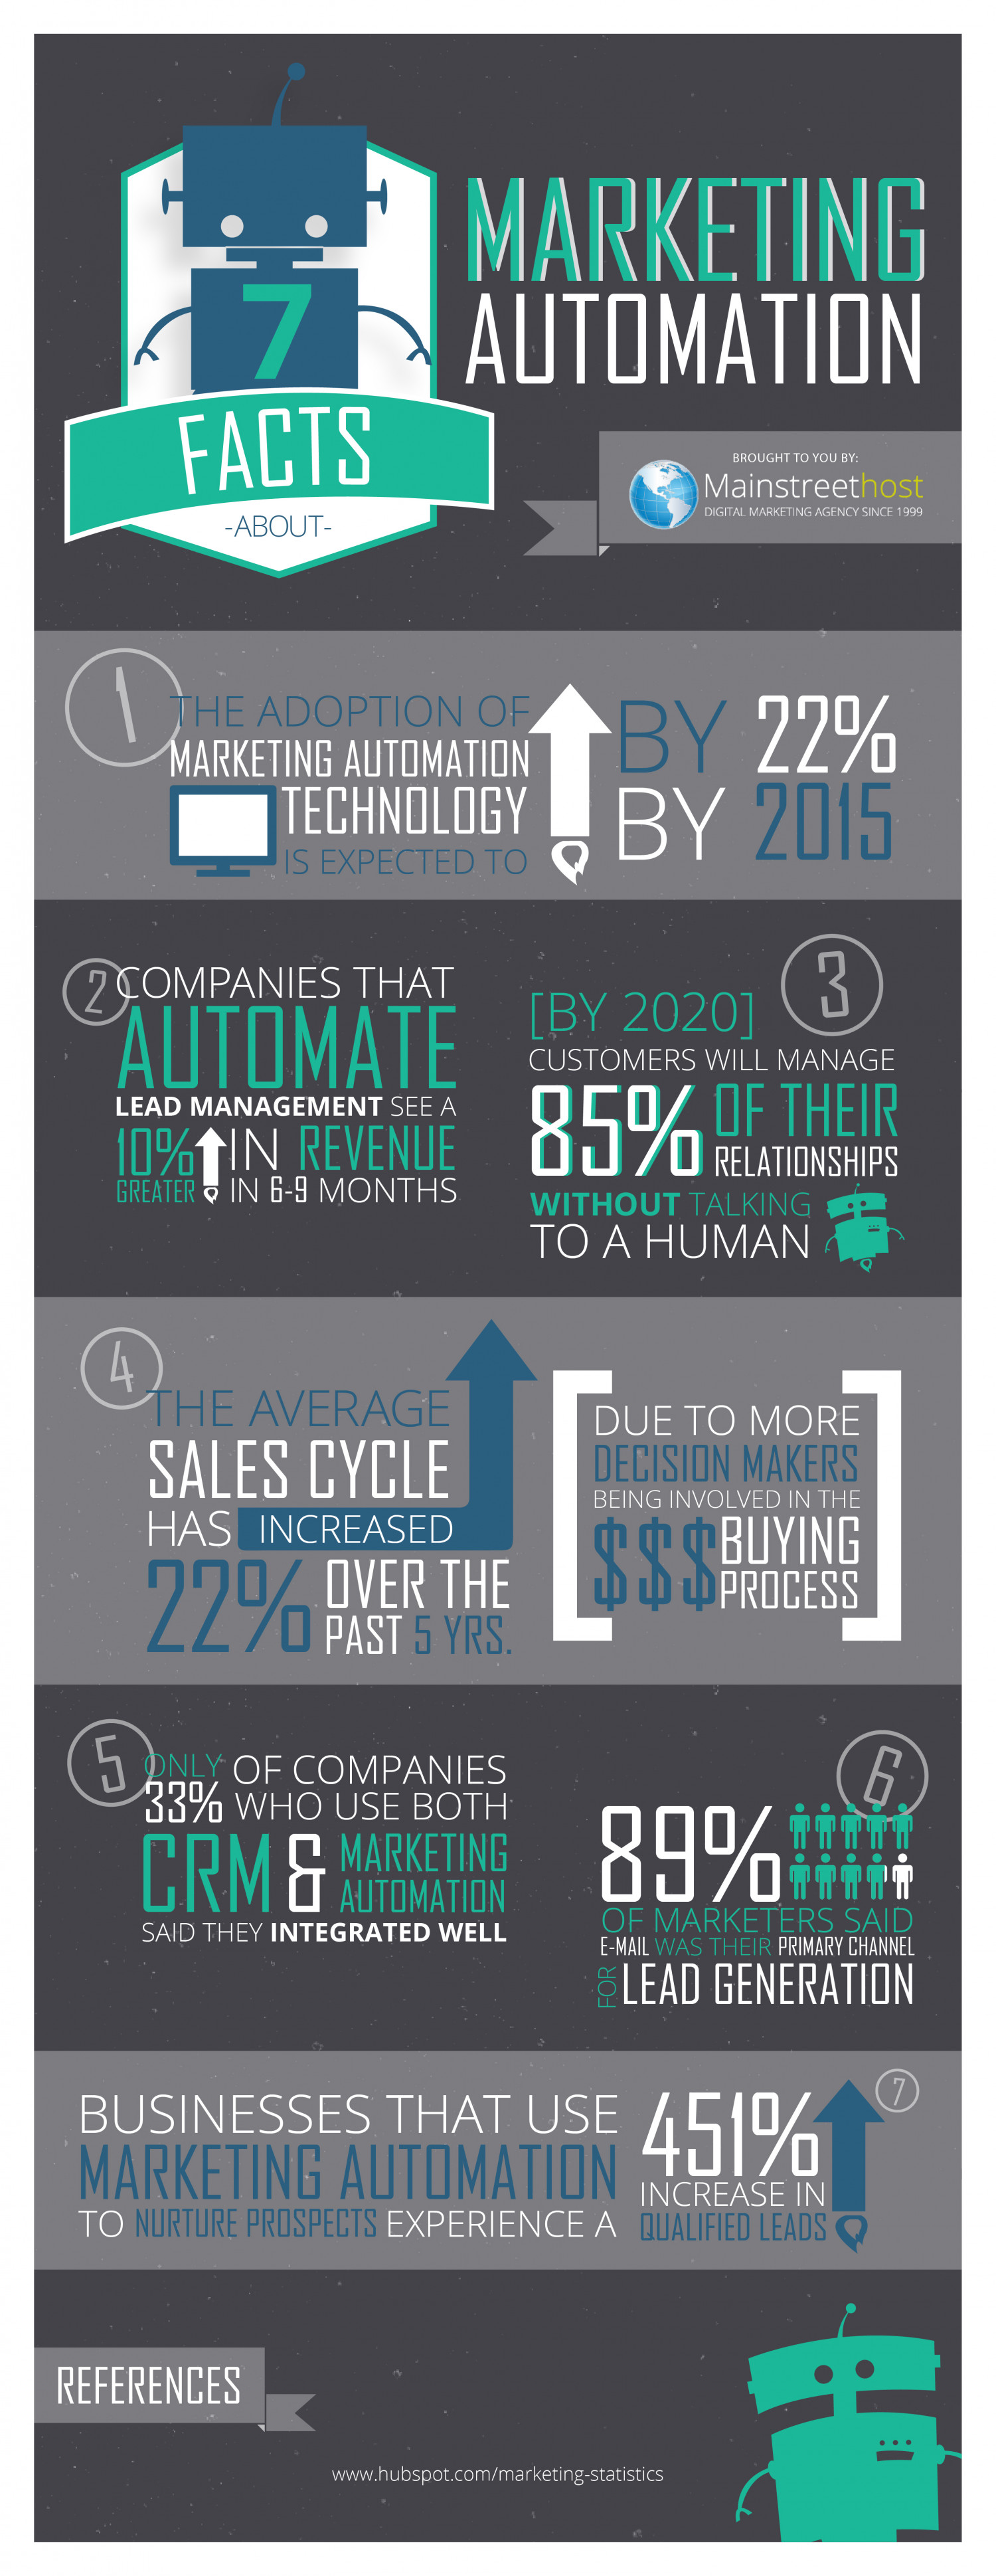 7 Facts About Marketing Automation Infographic